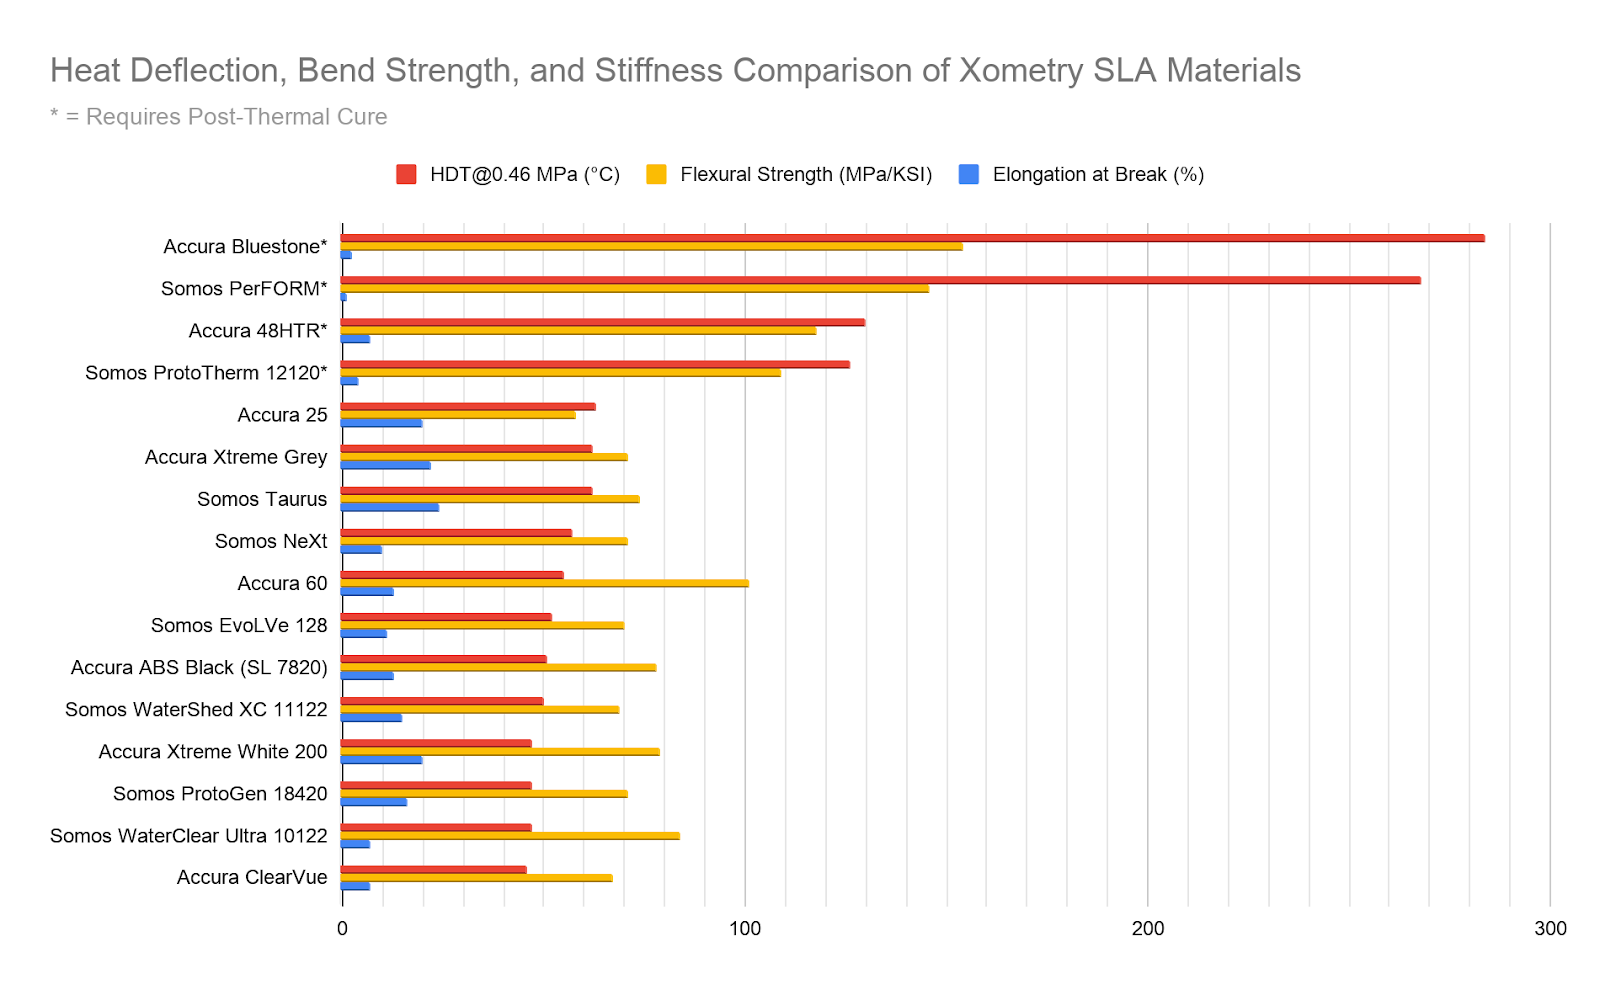 A chart comparing heat deflection, bend strength, and stiffness between SLA materials. Note the correlation between high thermal resistance and material stiffness.